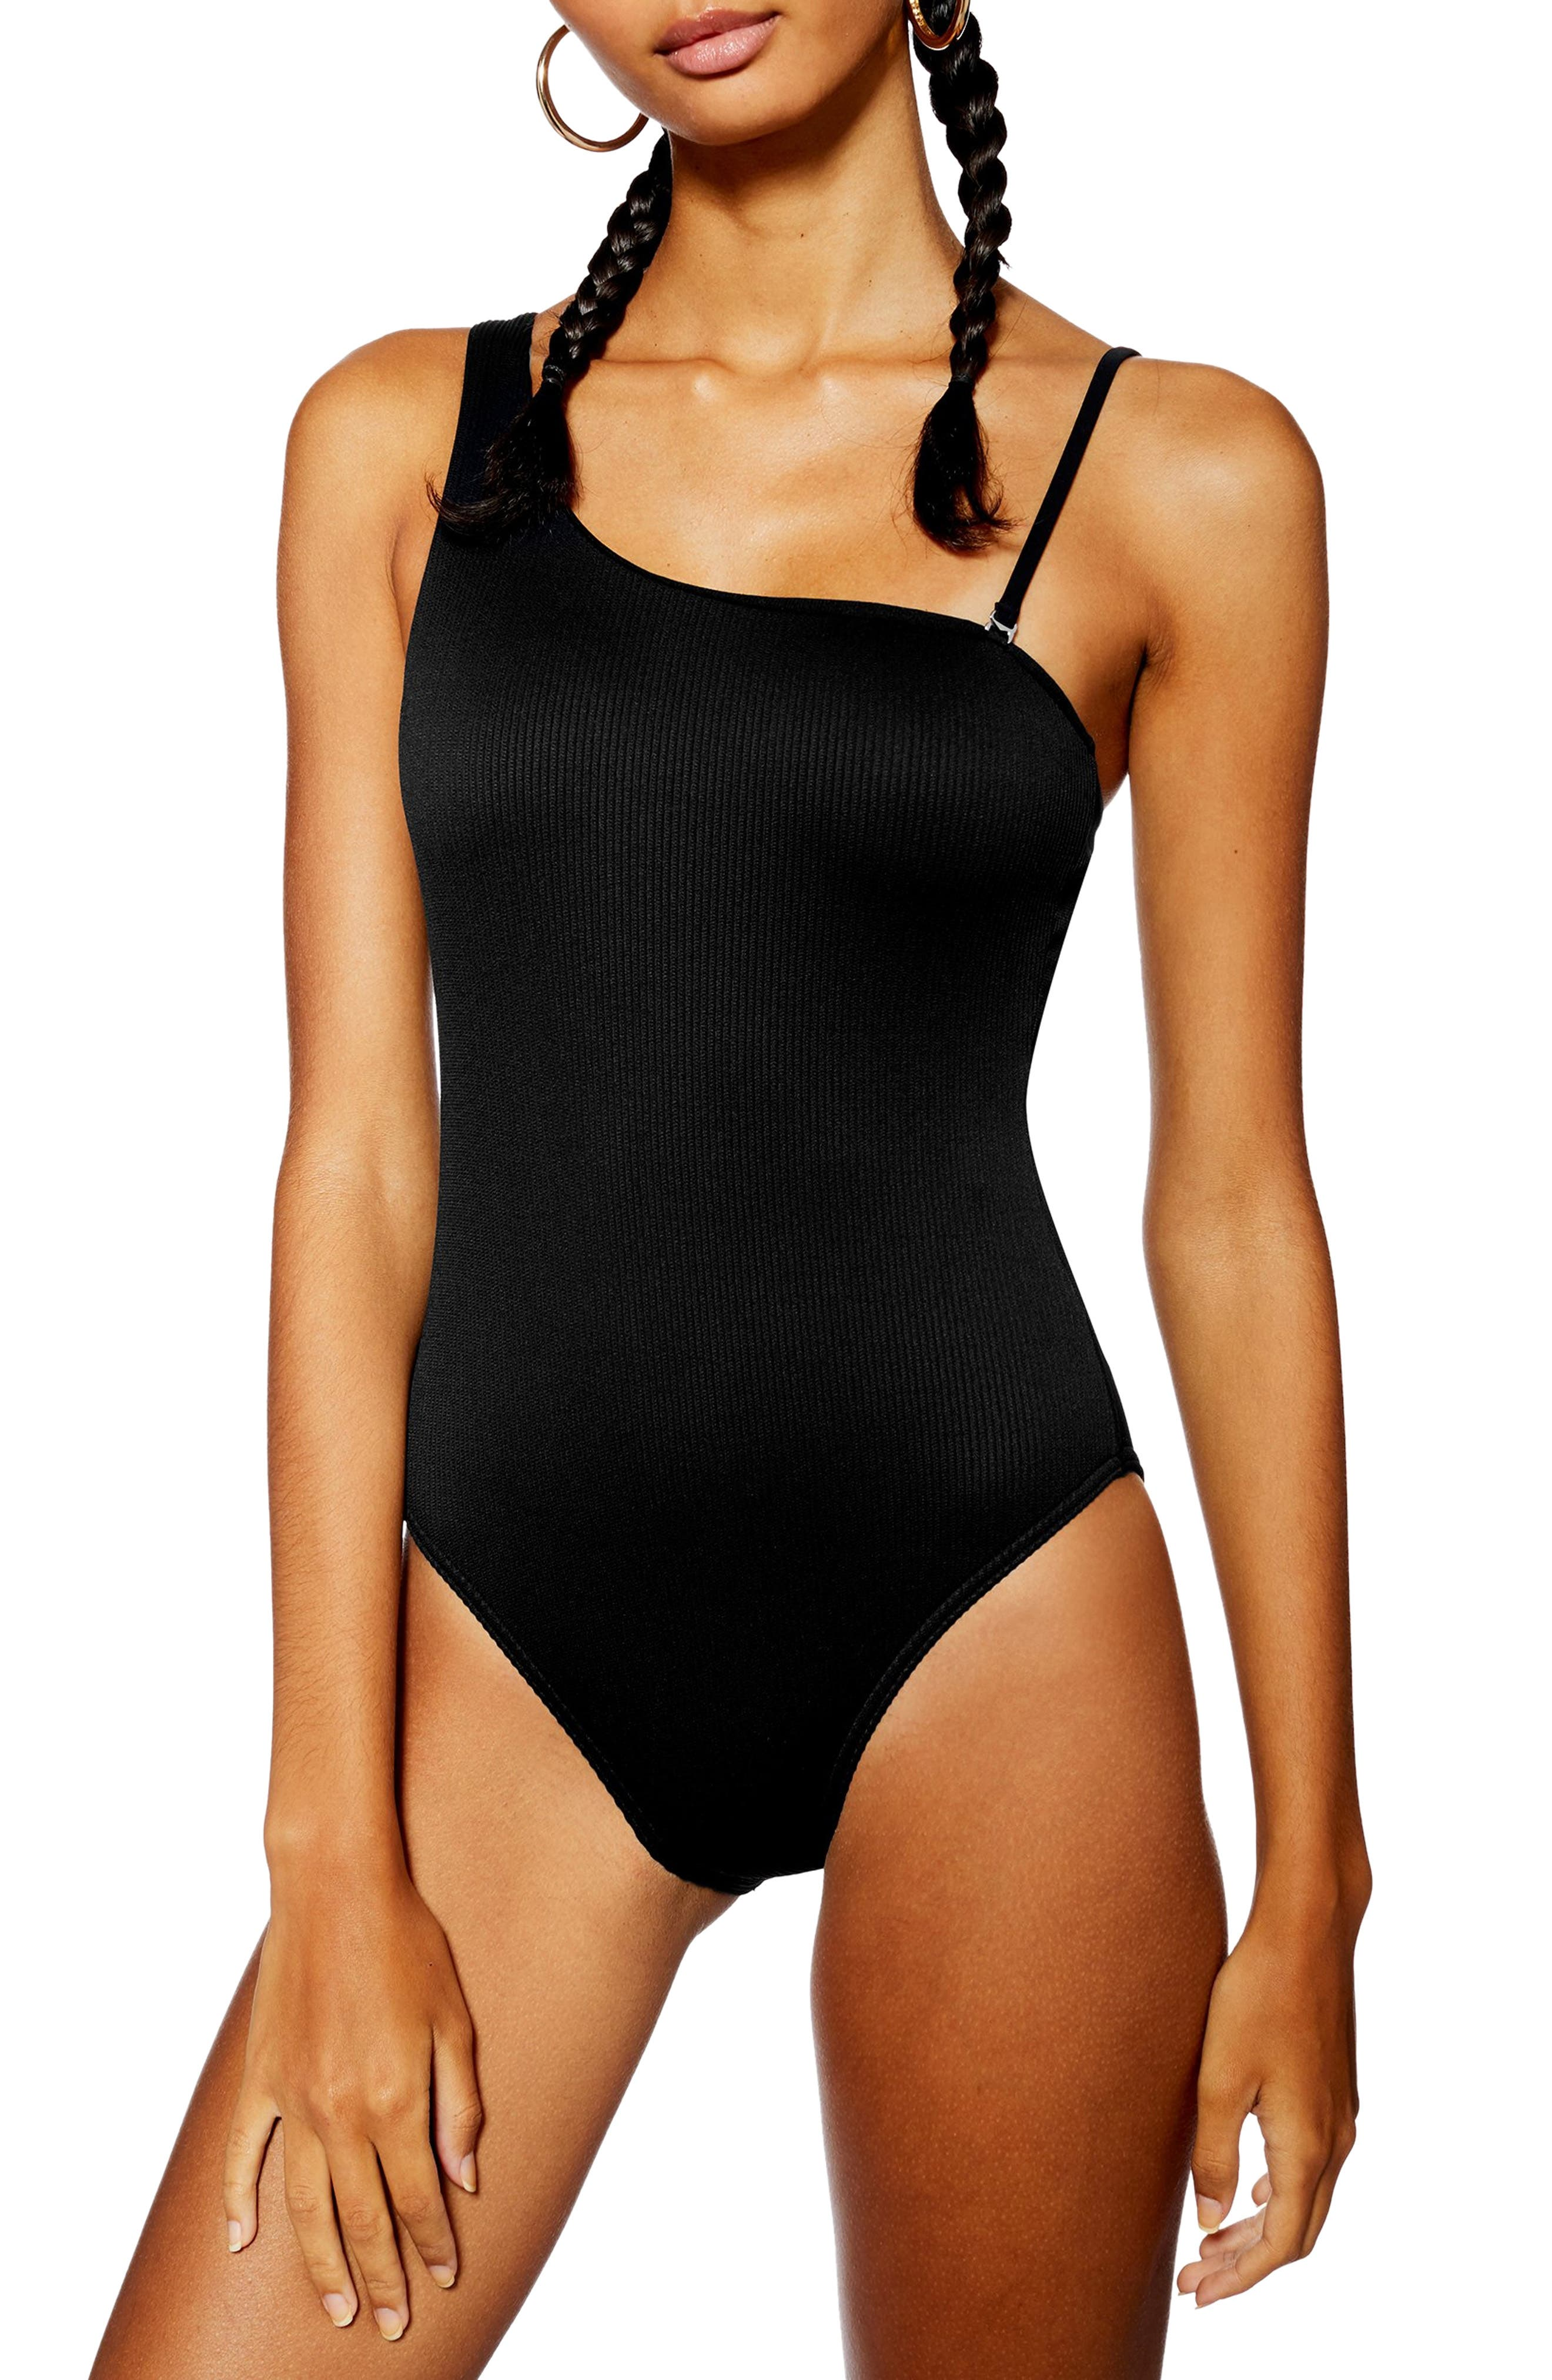 Topshop Ribbed One-Shoulder One-Piece Swimsuit, US (fits like 0) - Black